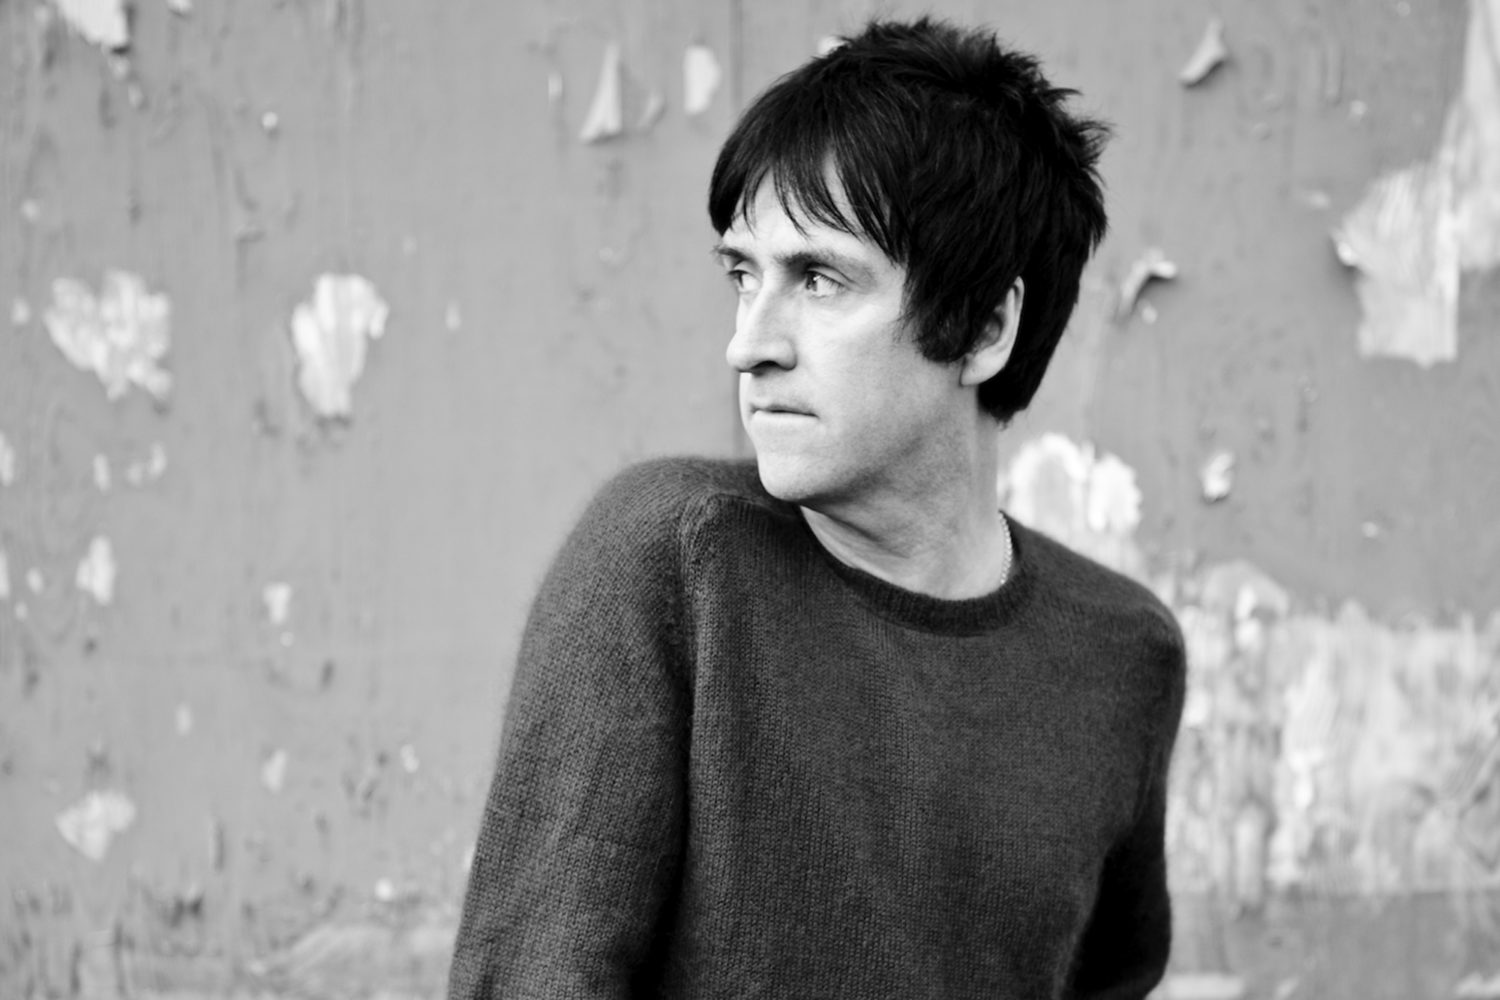 Johnny Marr unveils 'The Trap' song from new LP